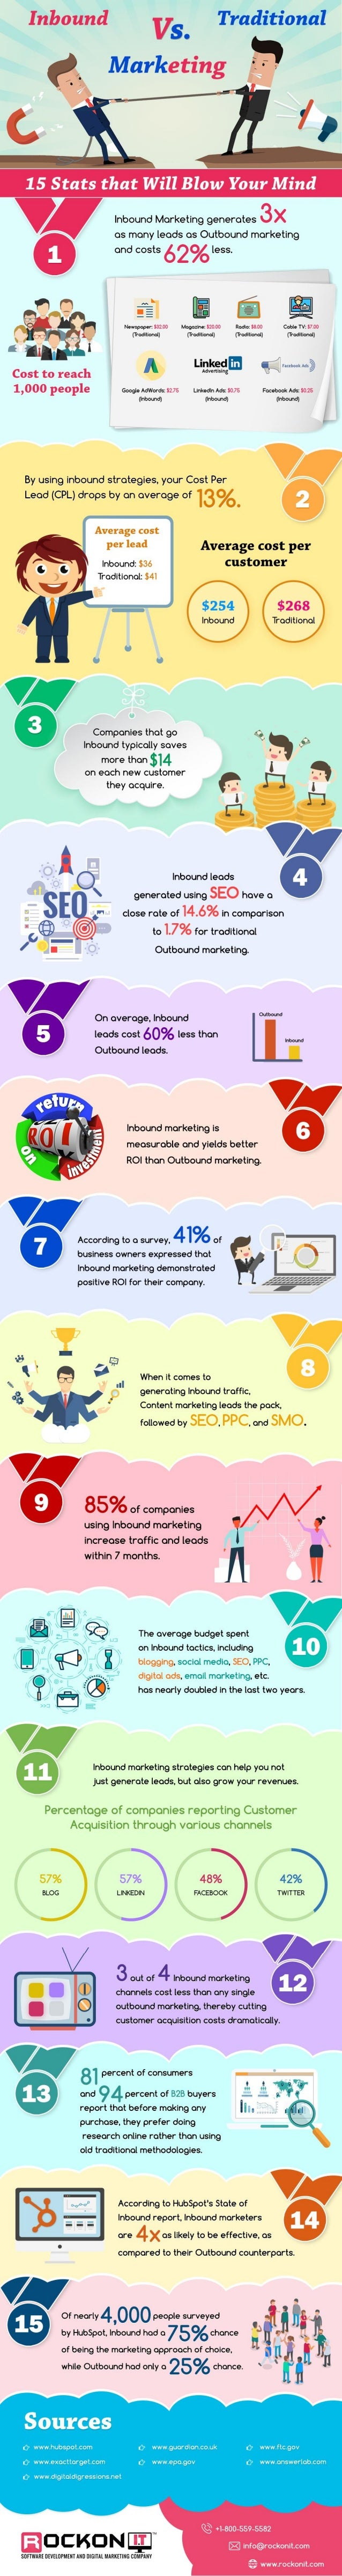 15 Facts that Prove Inbound Marketing is More Efficacious than Traditional Methods - Infographic